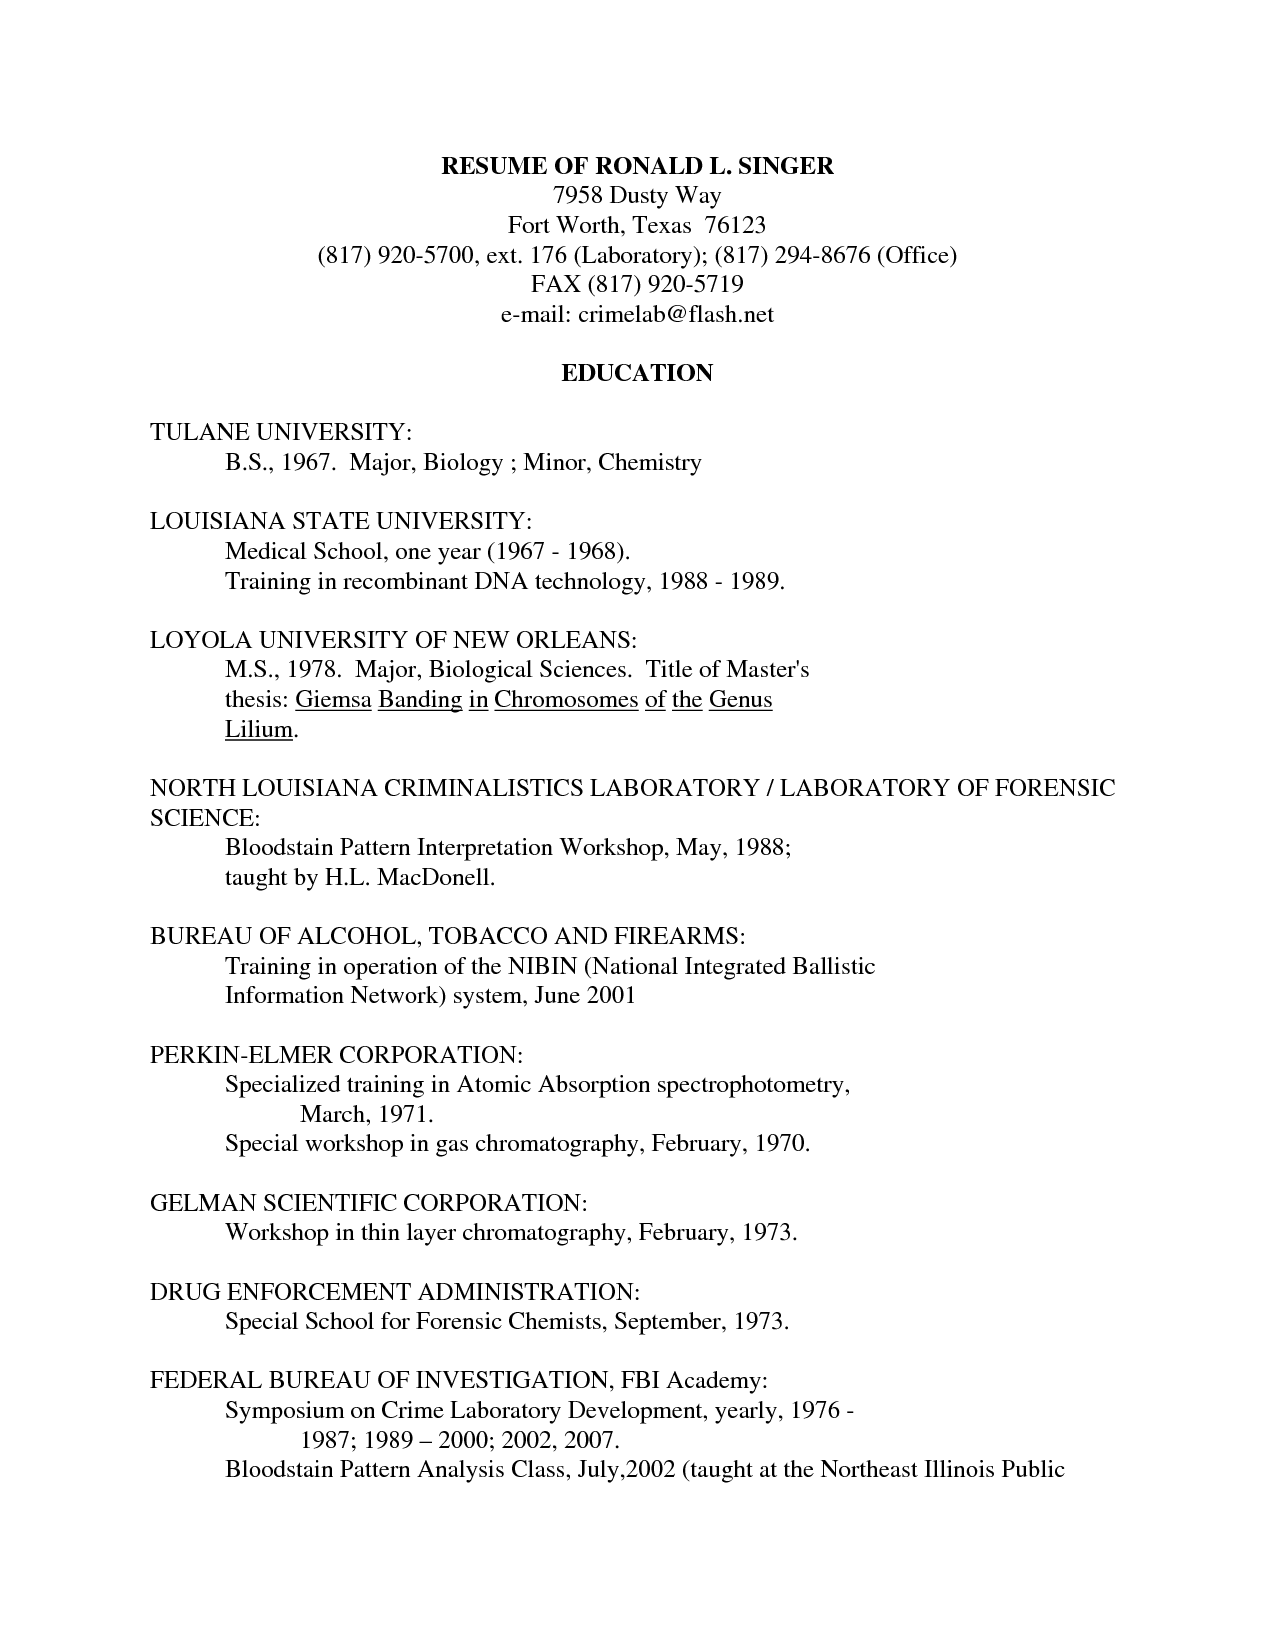 forensic science resume